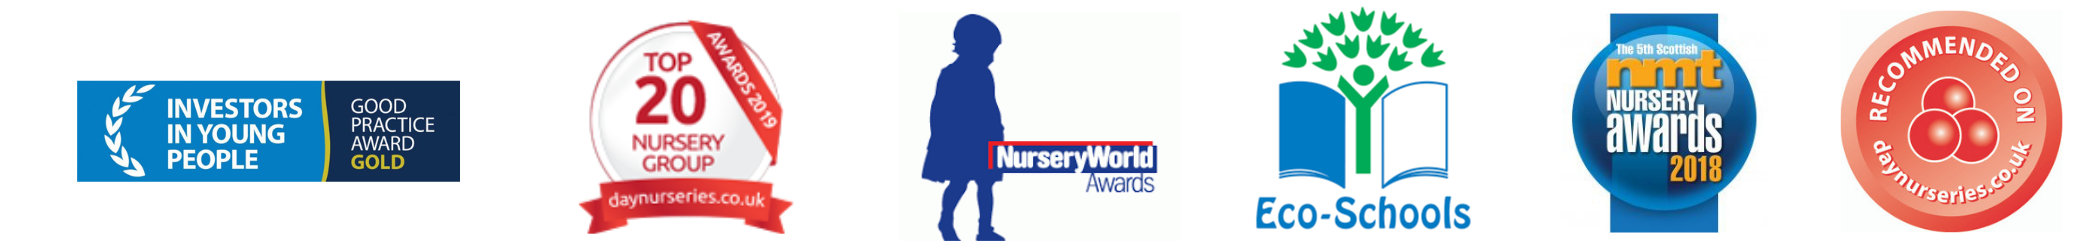 Corner House Nursery Awards